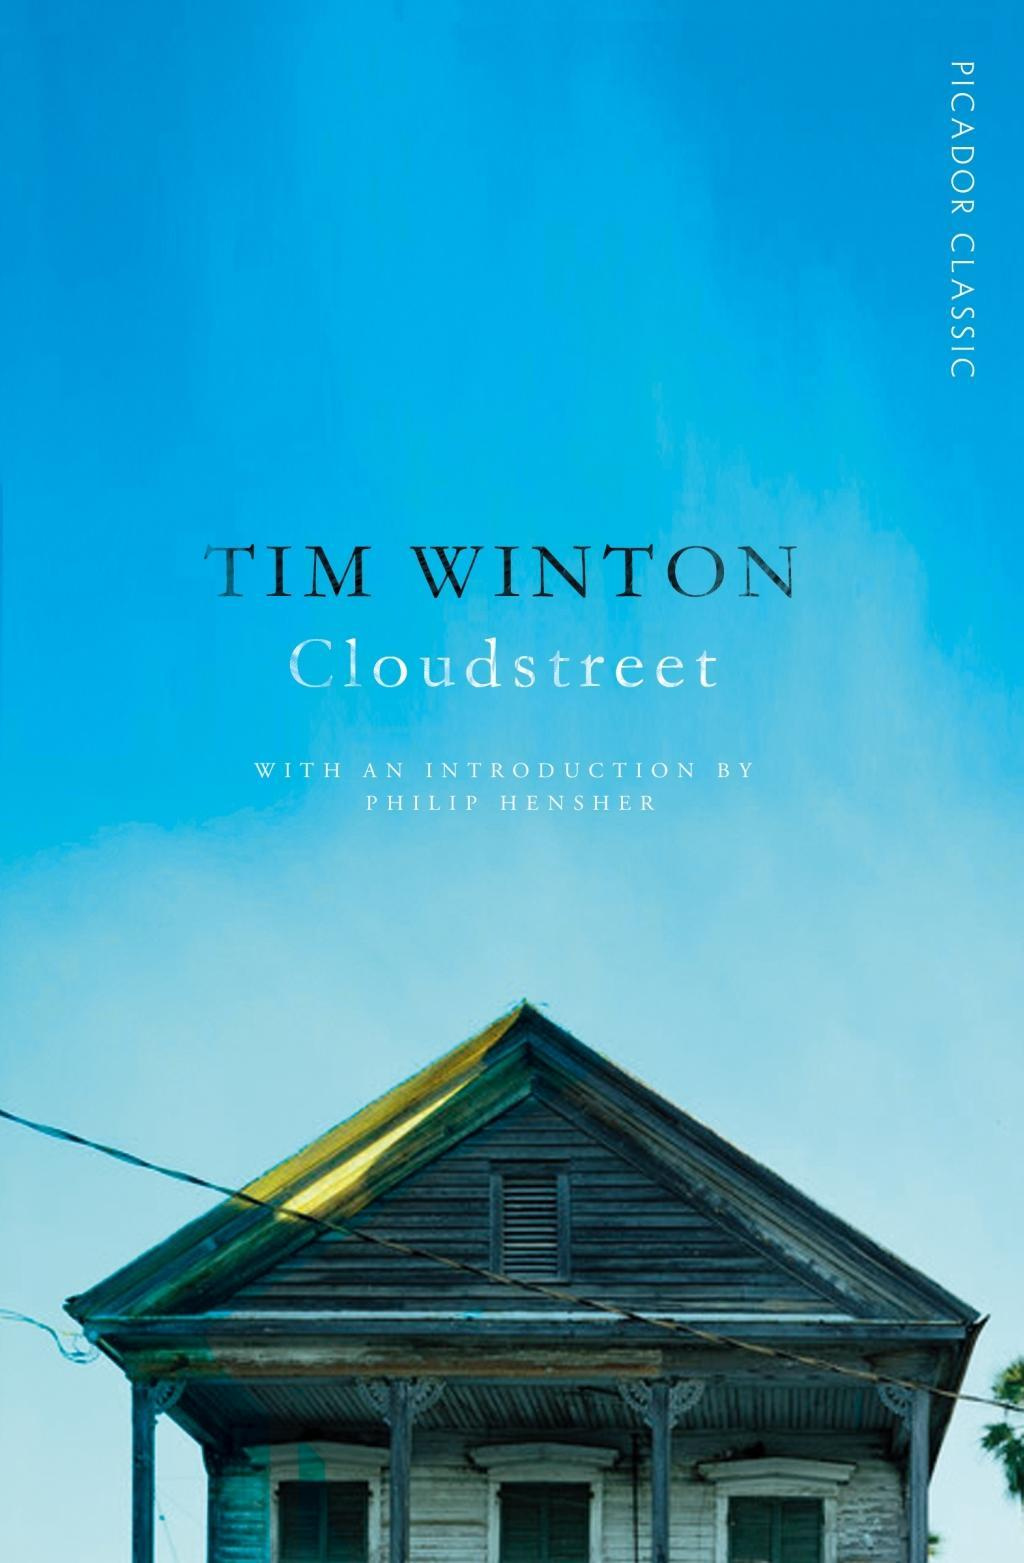 Cloudstreet by Tim Winton, ISBN: 9781447275305